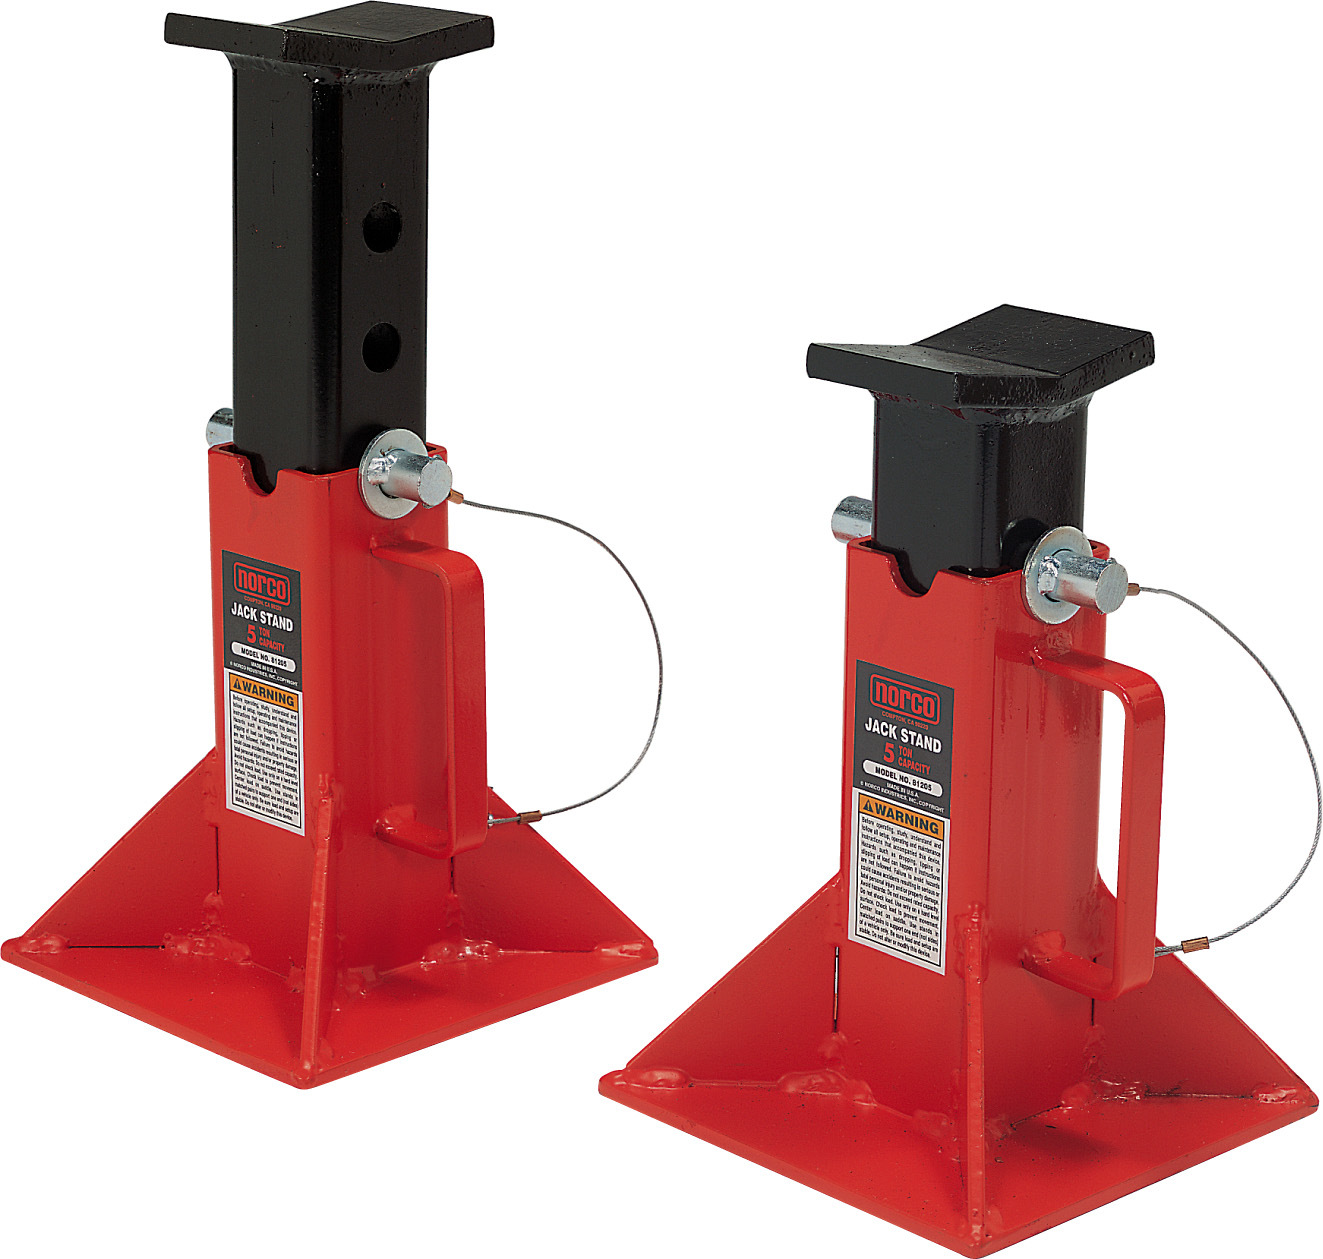 5 Tone Fork Lift Support Stand, Pin Type Truck Jack Stand